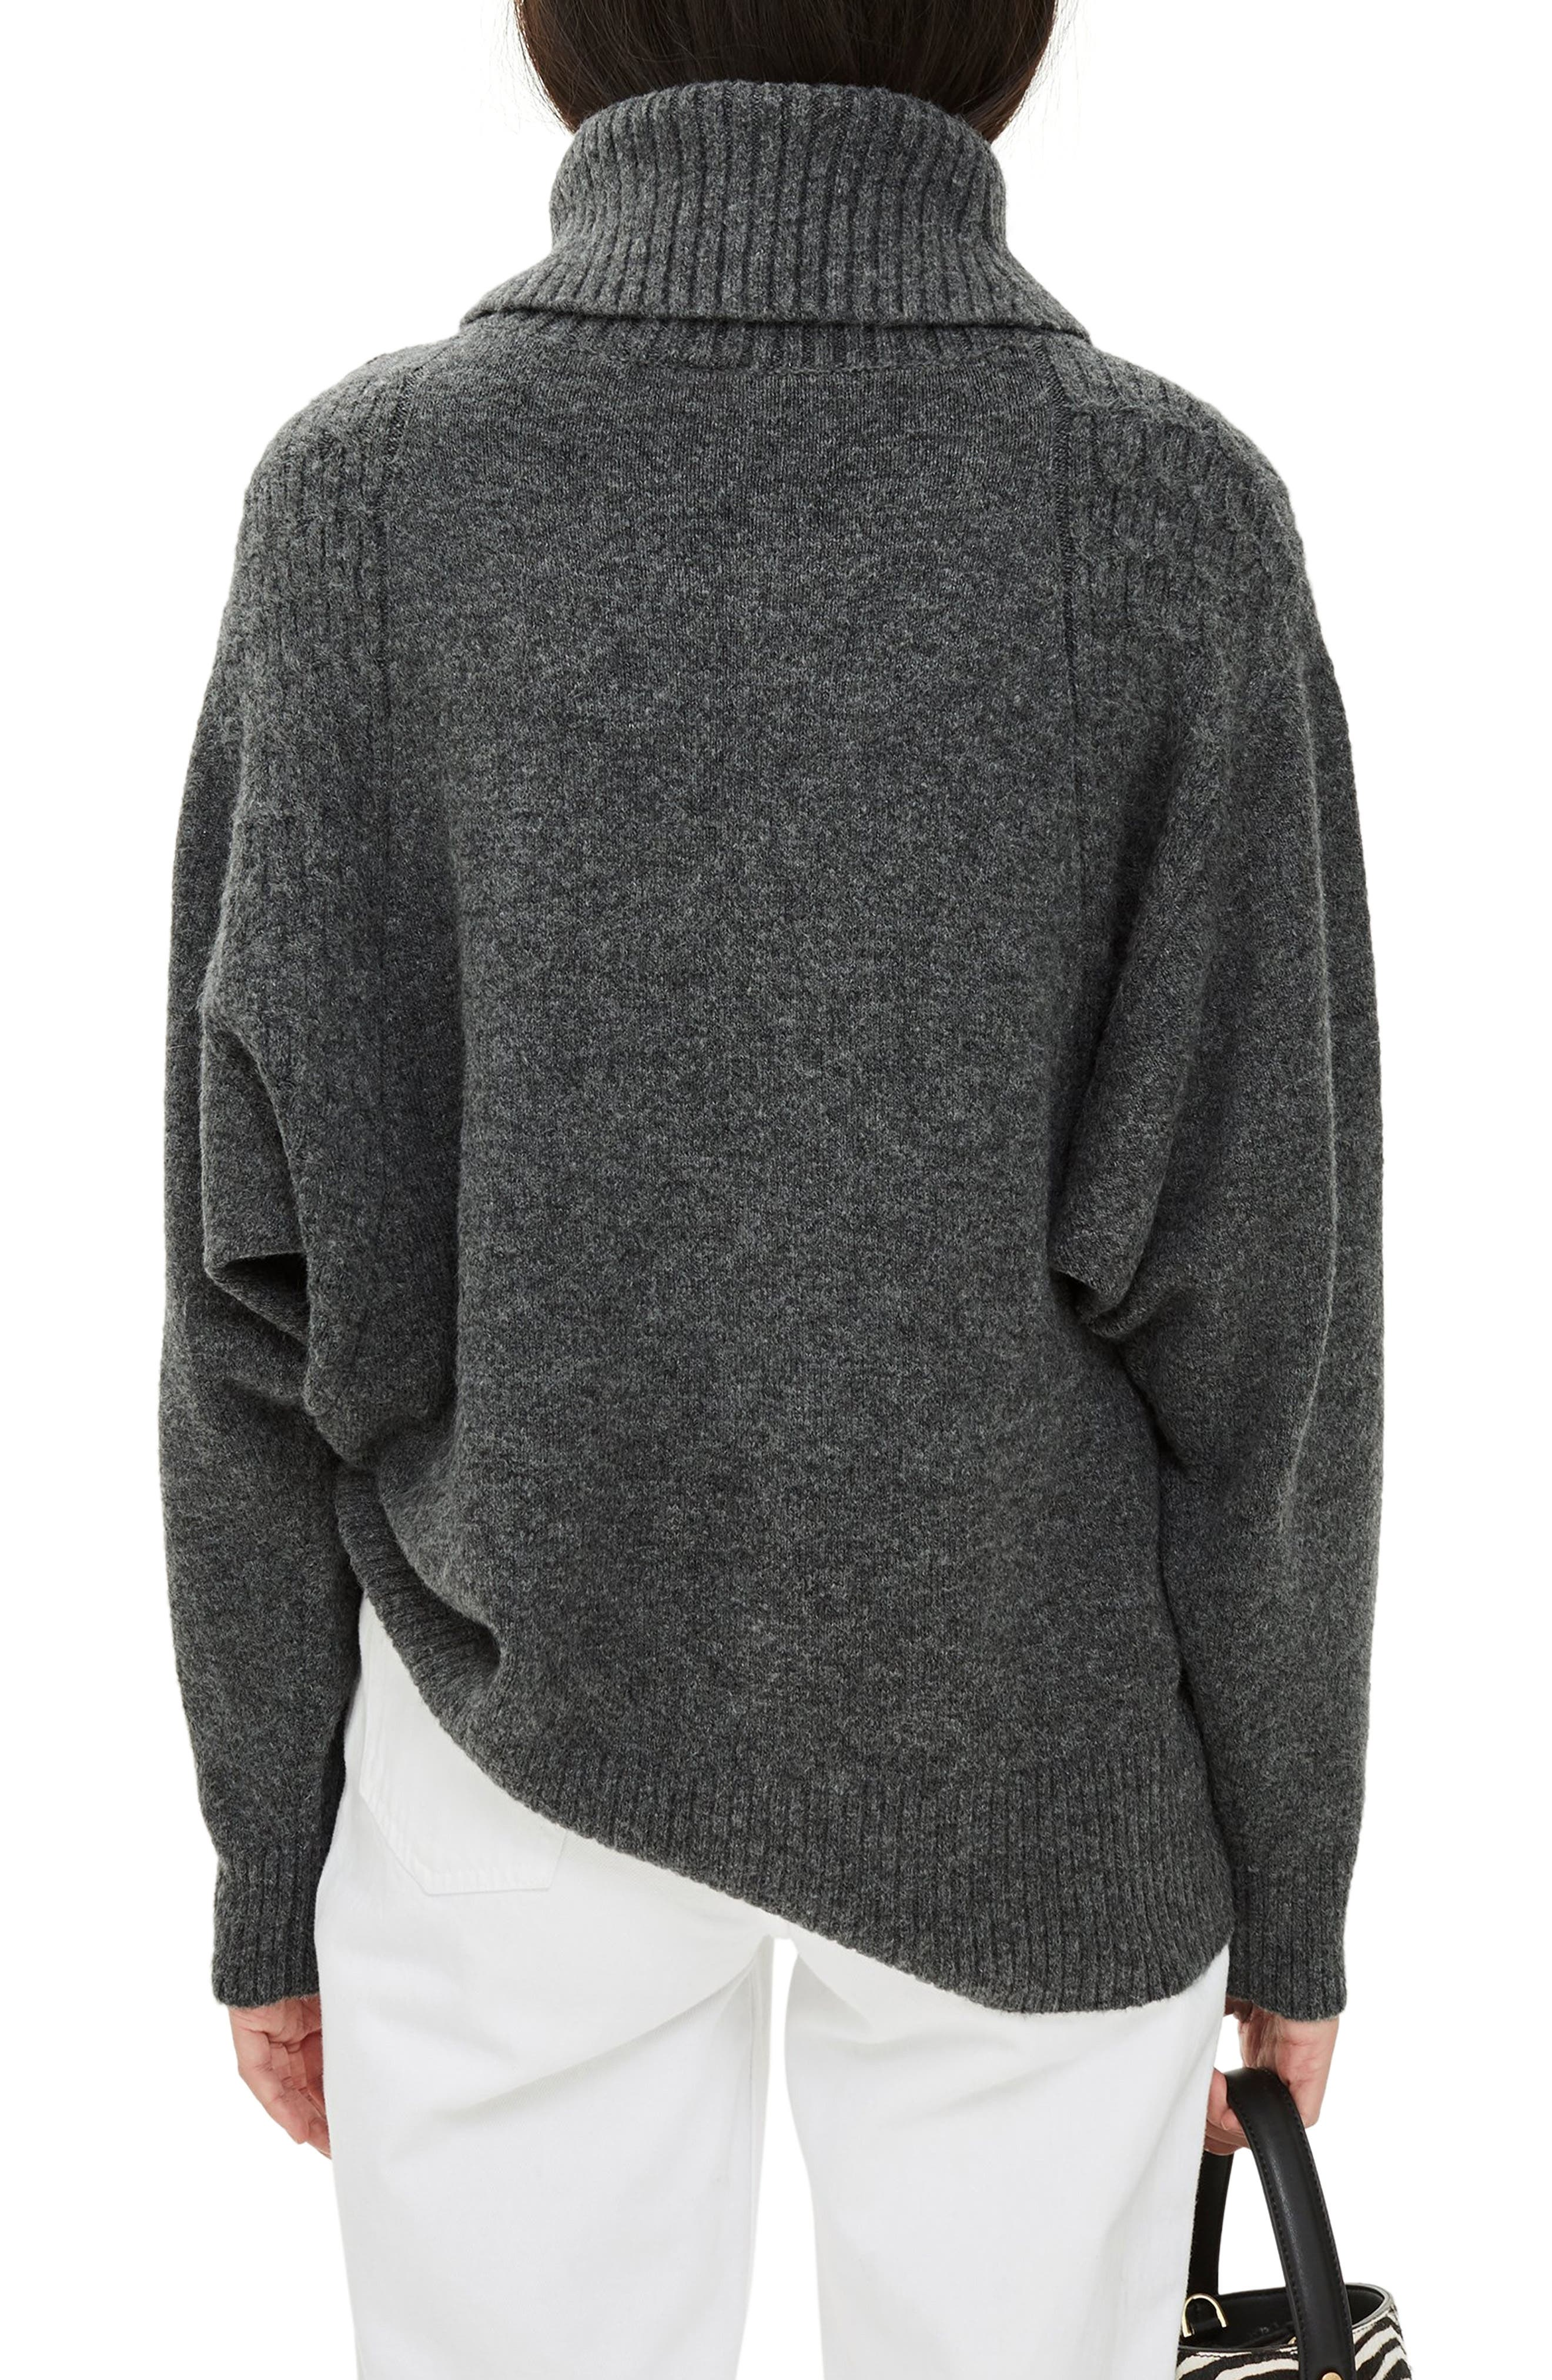 TOPSHOP,                             Turtleneck Sweater,                             Alternate thumbnail 2, color,                             CHARCOAL